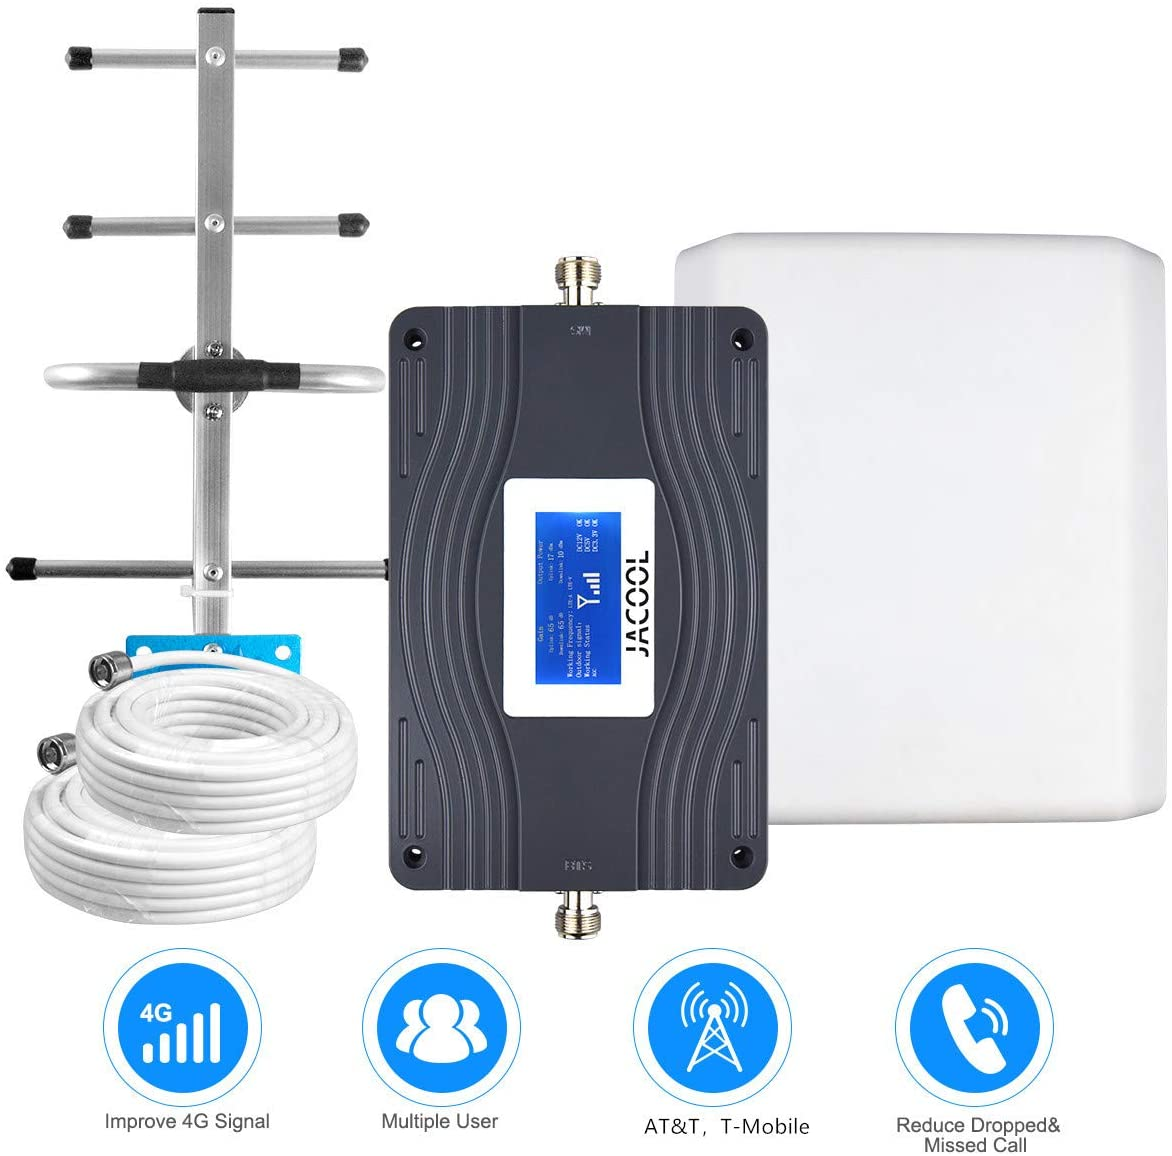 AT&T Cell Phone Signal Booster 4G LTE T-Mobile ATT Cell Signal Booster Amplifier FDD AT&T US Cellular Mobile Signal Booster 700MHz Band 12/17 for Home Use - Improve 4G Data & Voice for Remote Area